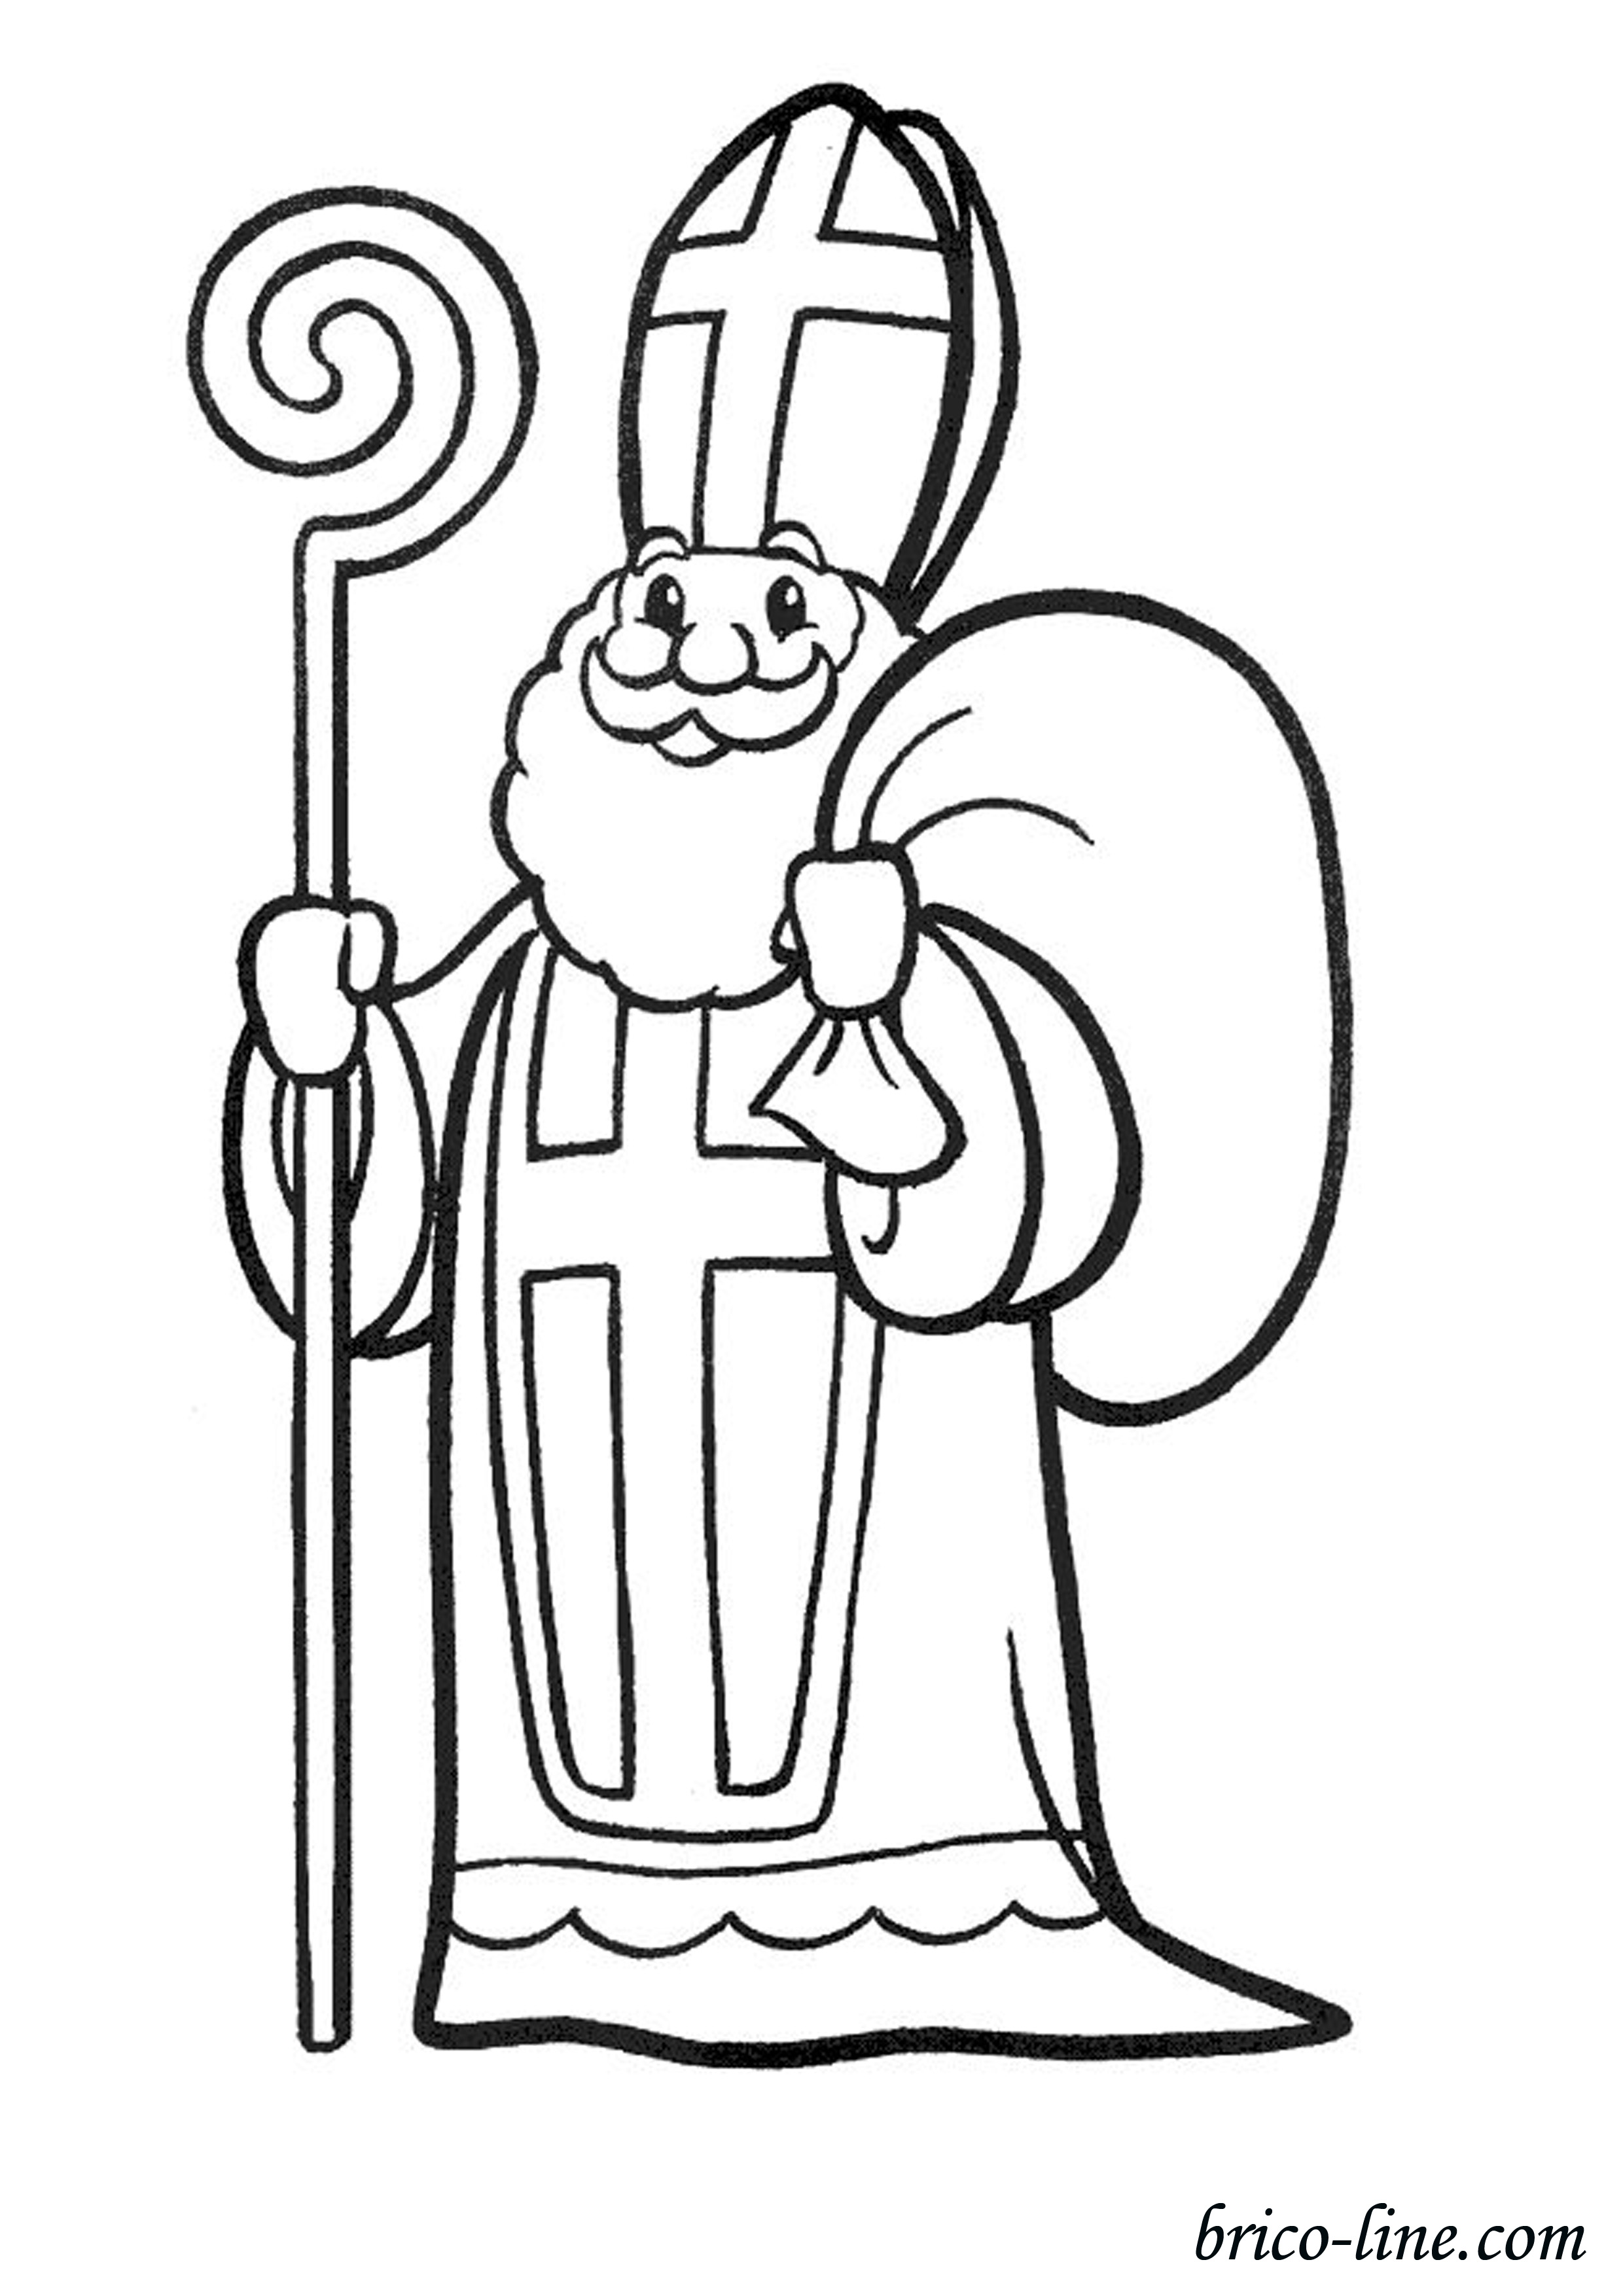 Saint nicolas 1 coloriage saint nicolas coloriages - Dessin de saint ...